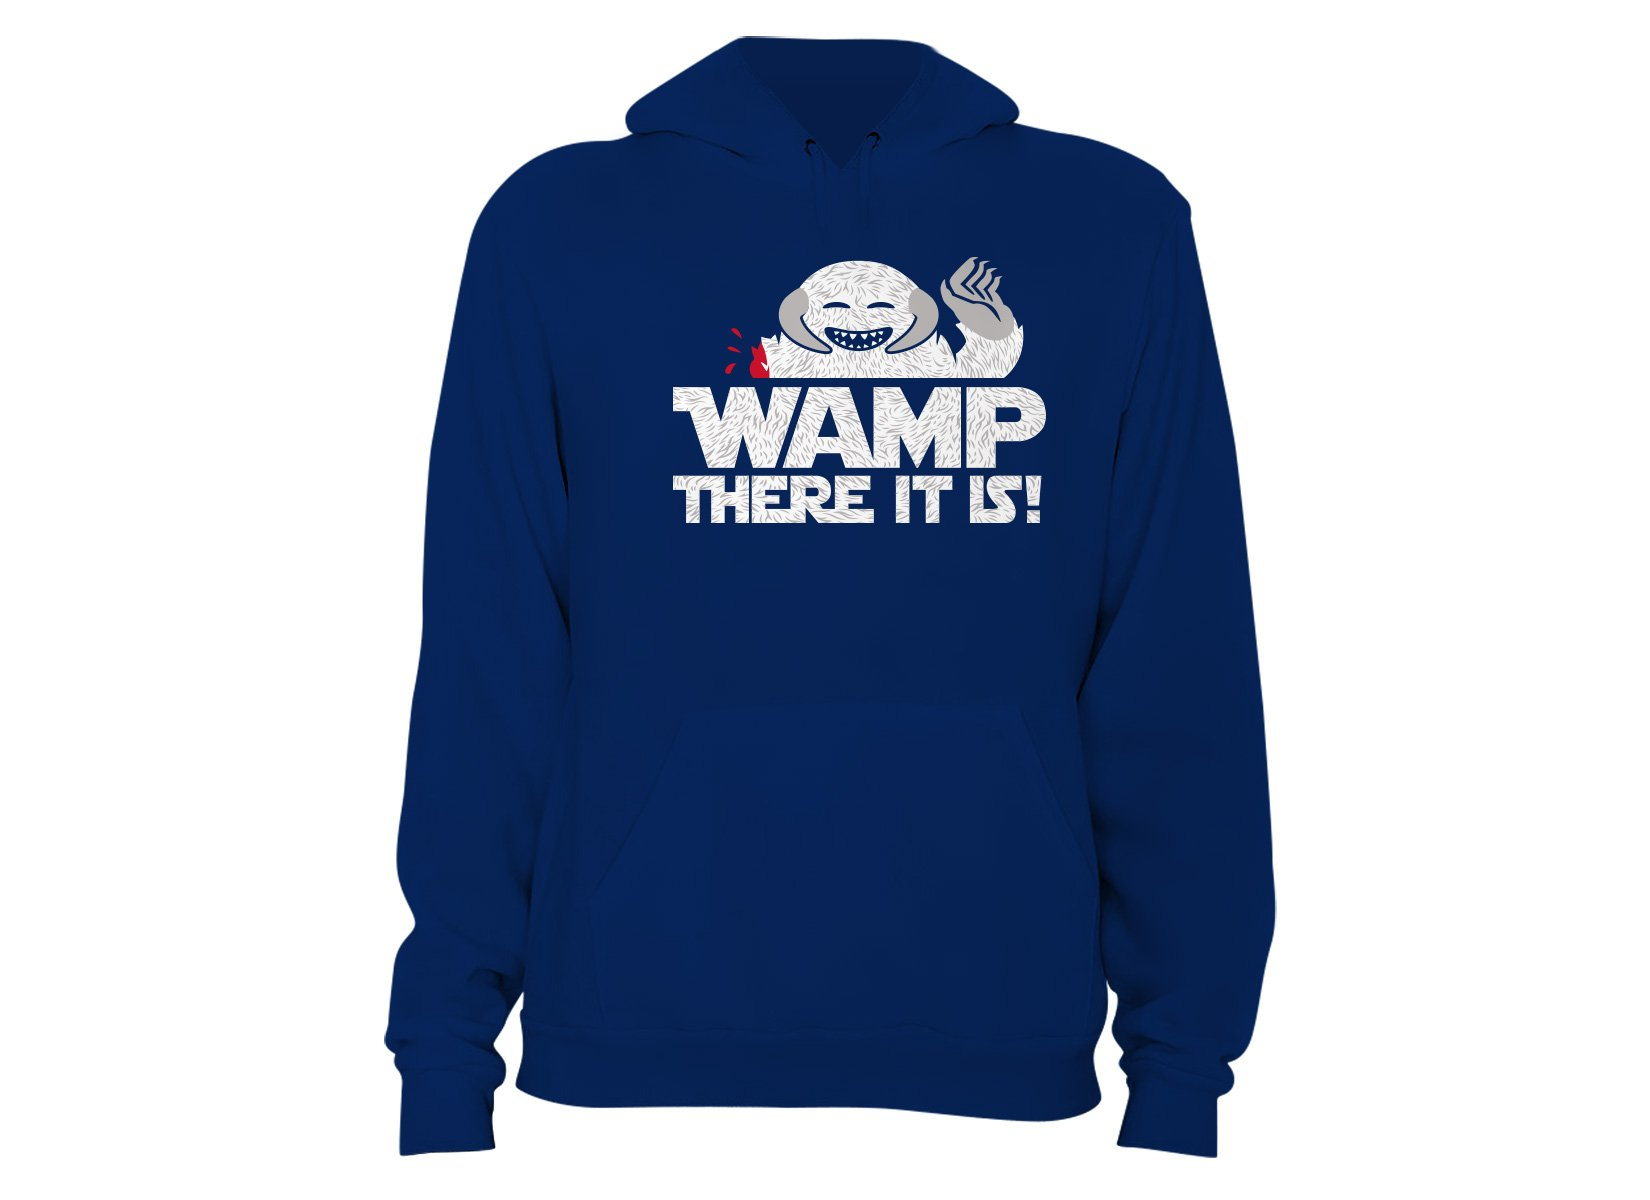 Wamp There It Is on Hoodie